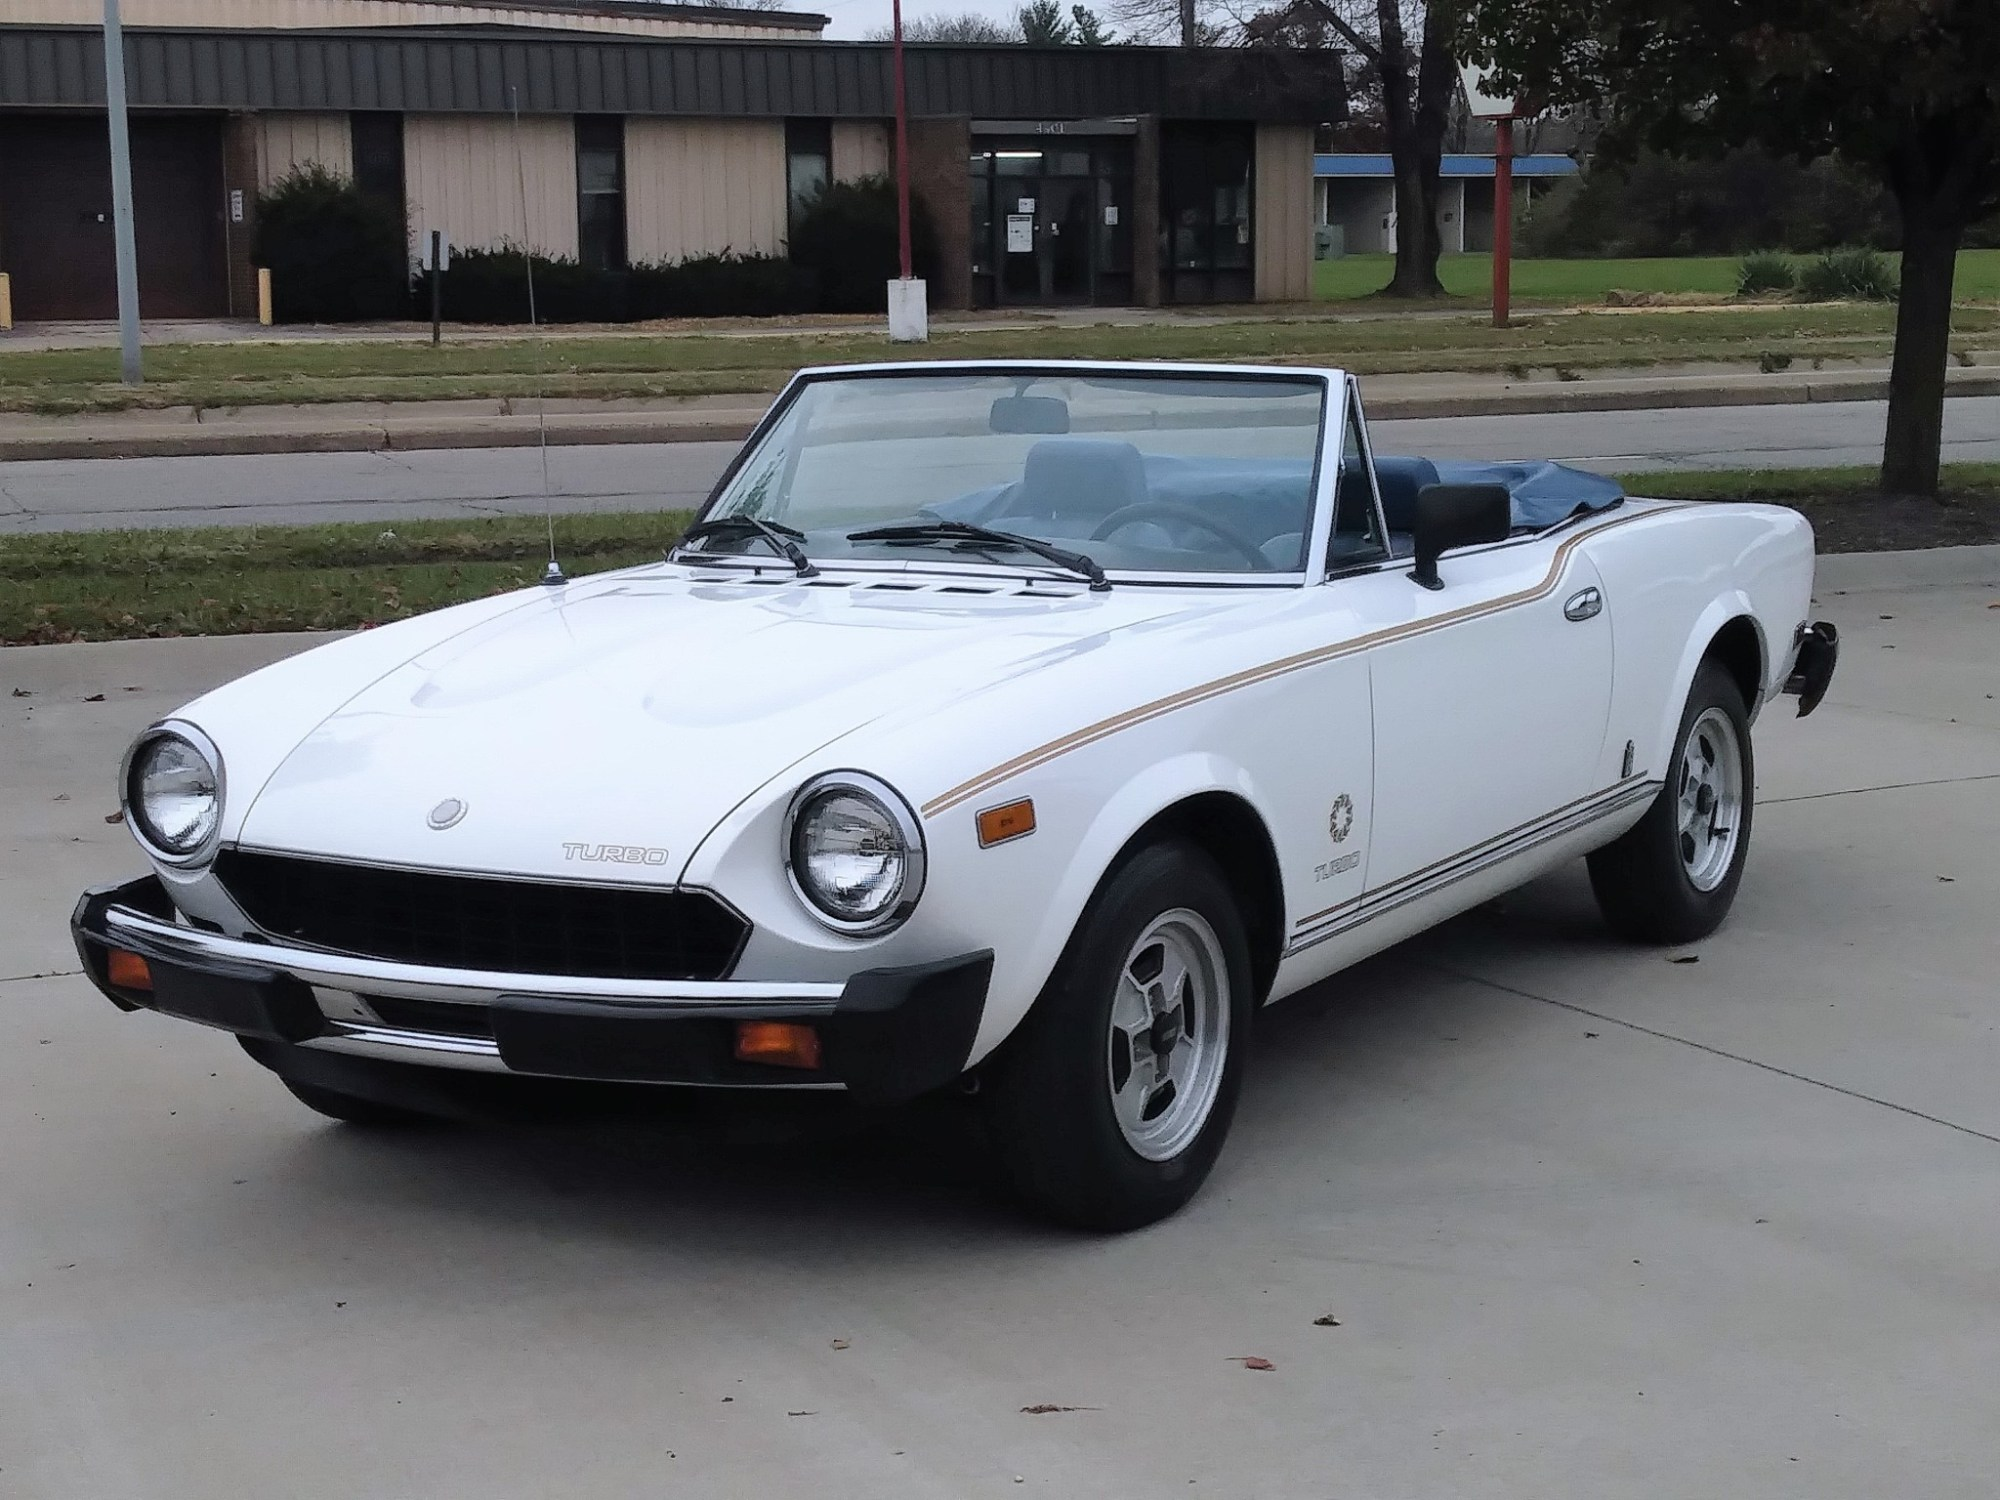 hight resolution of 1981 fiat 2000 turbo spider for sale on bat auctions sold for 10 000 on april 29 2019 lot 18 325 bring a trailer